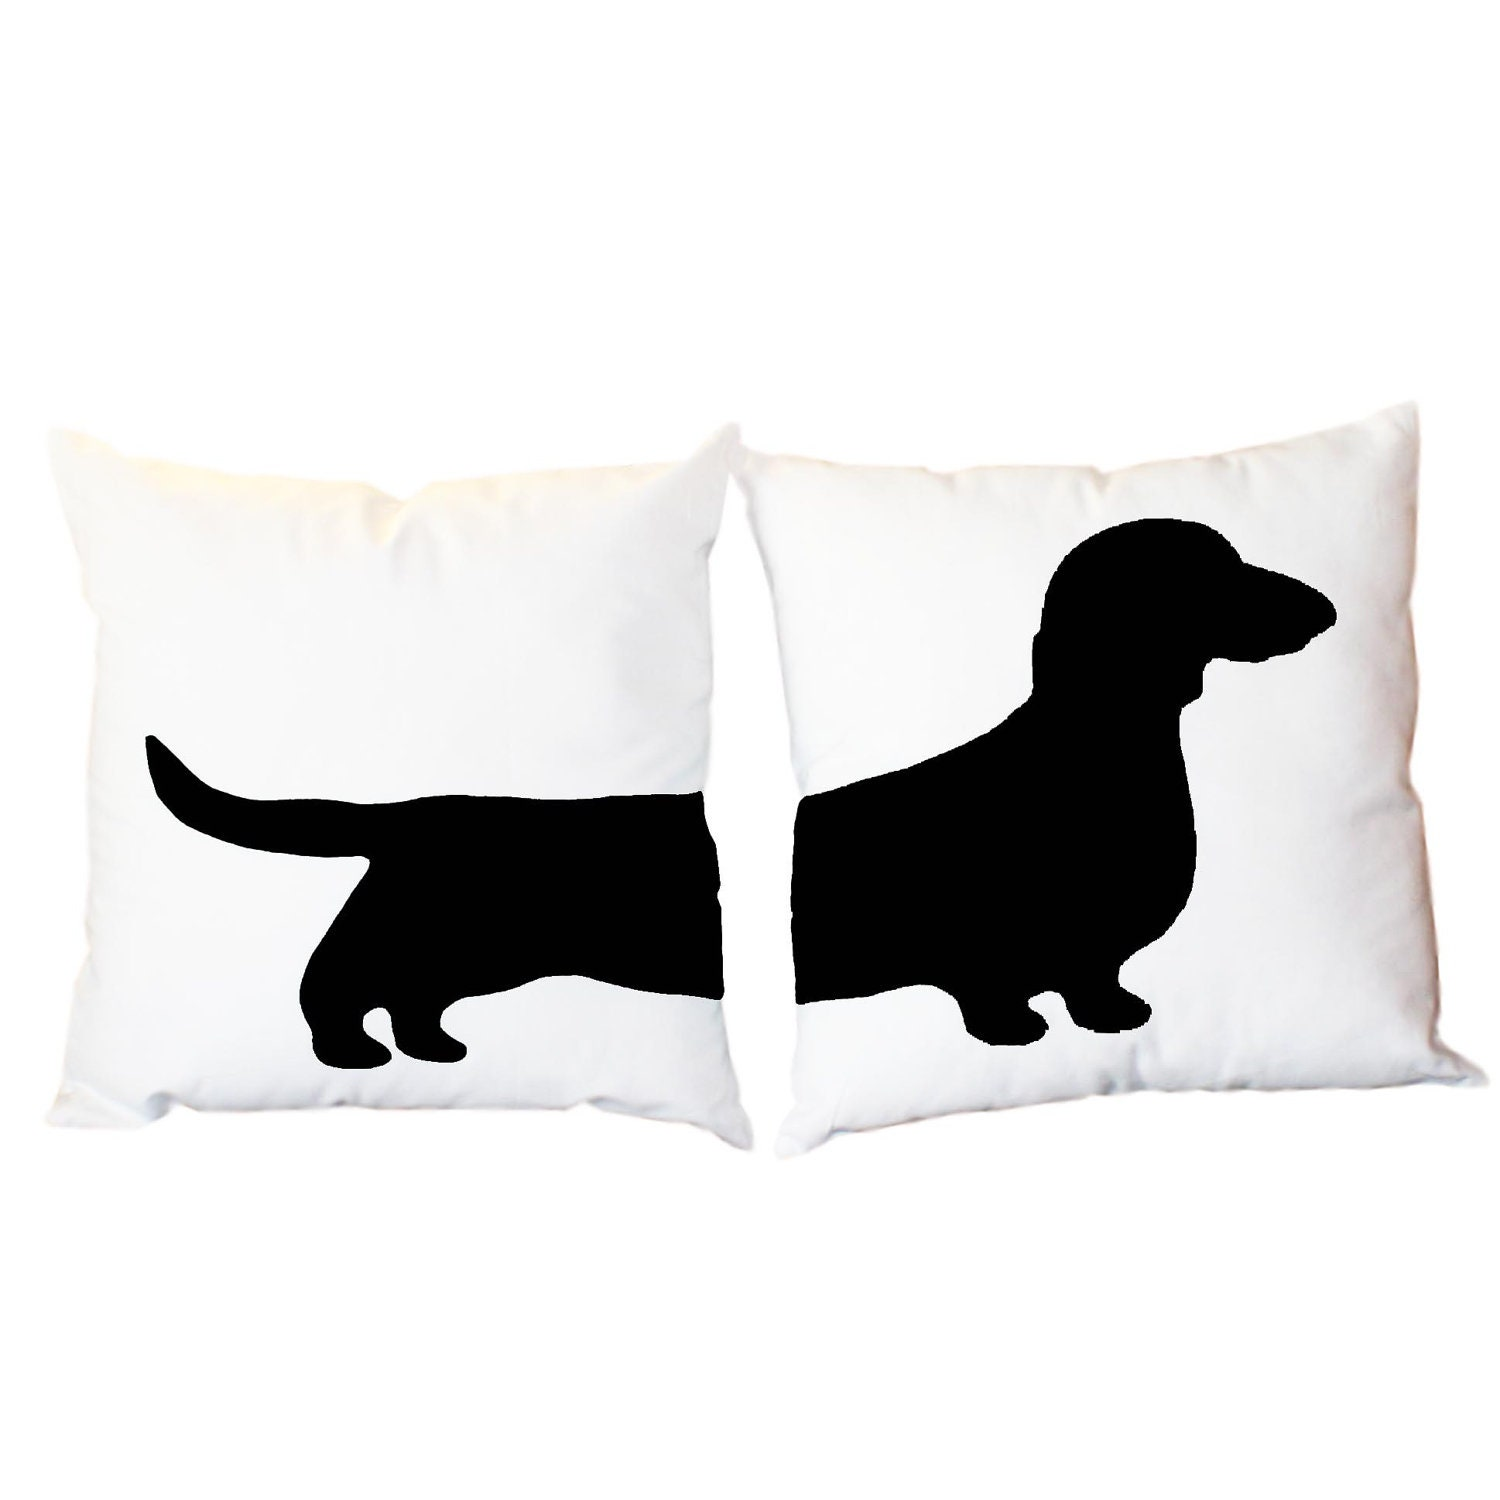 2 Modern Dachshund Pillows - Wiener Dog Home Decor